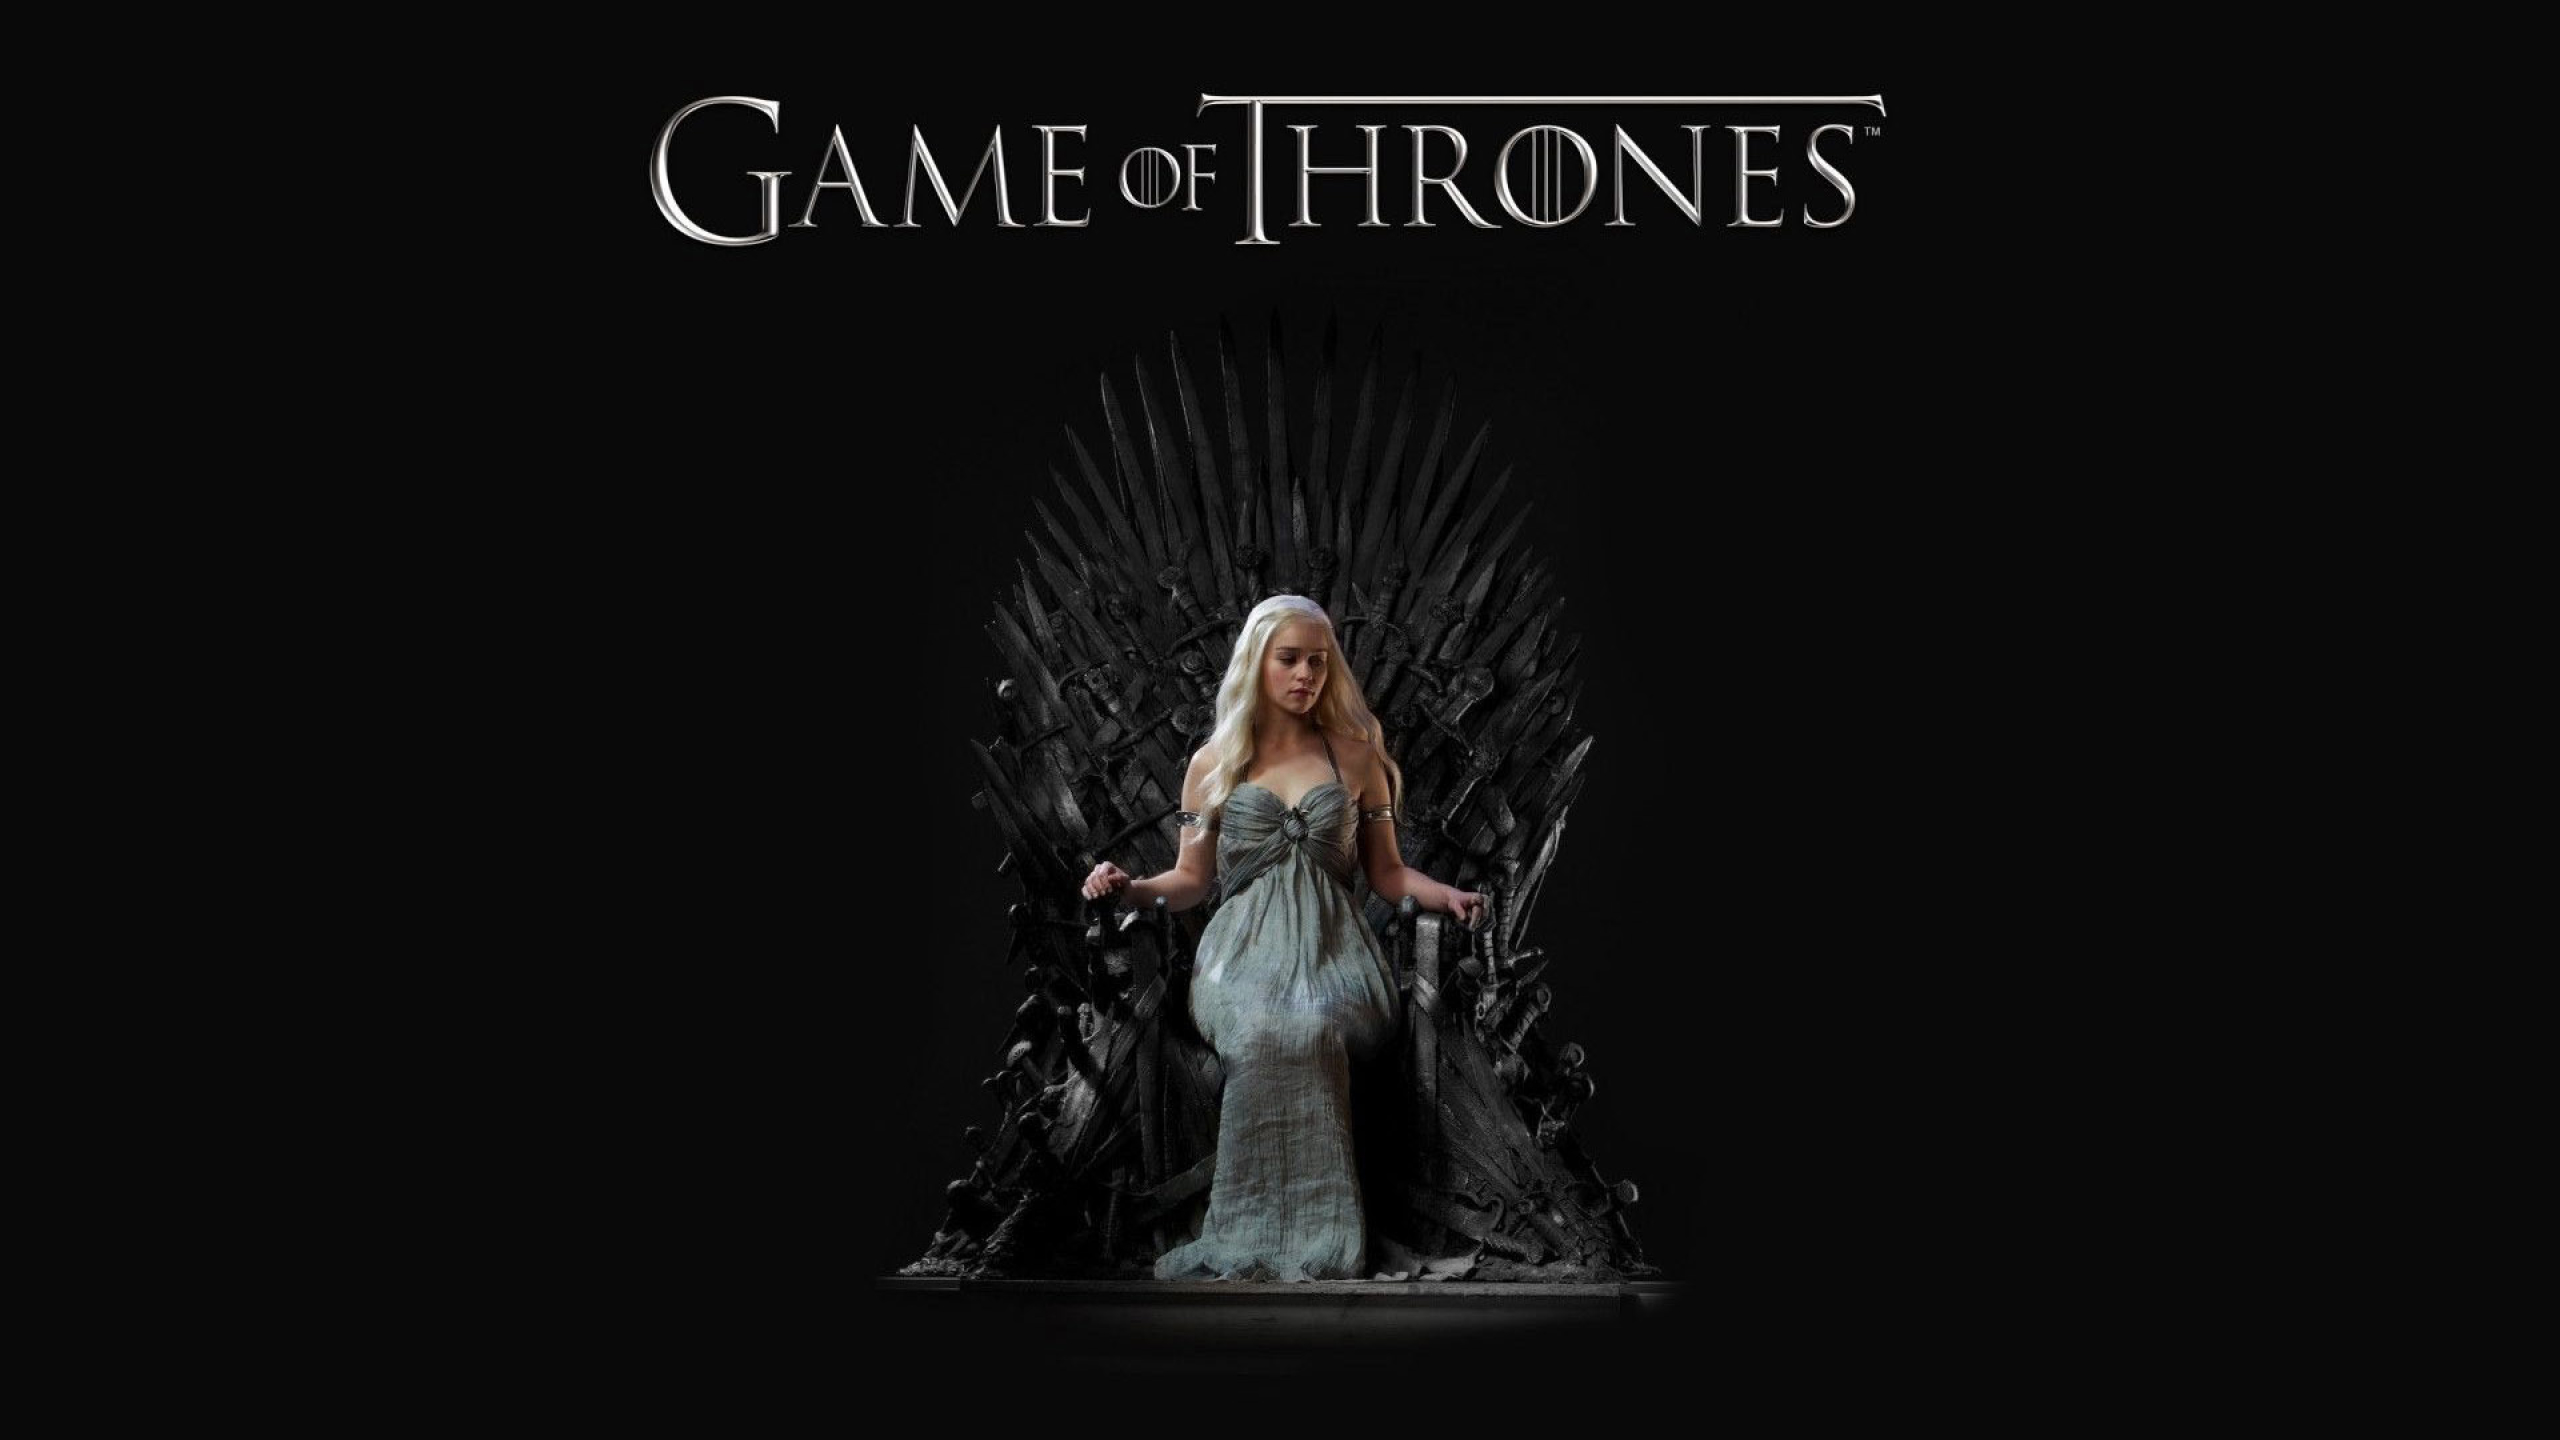 2560x1440 Daenerys Targaryen Game Of Thrones Tv Show Wallpaper